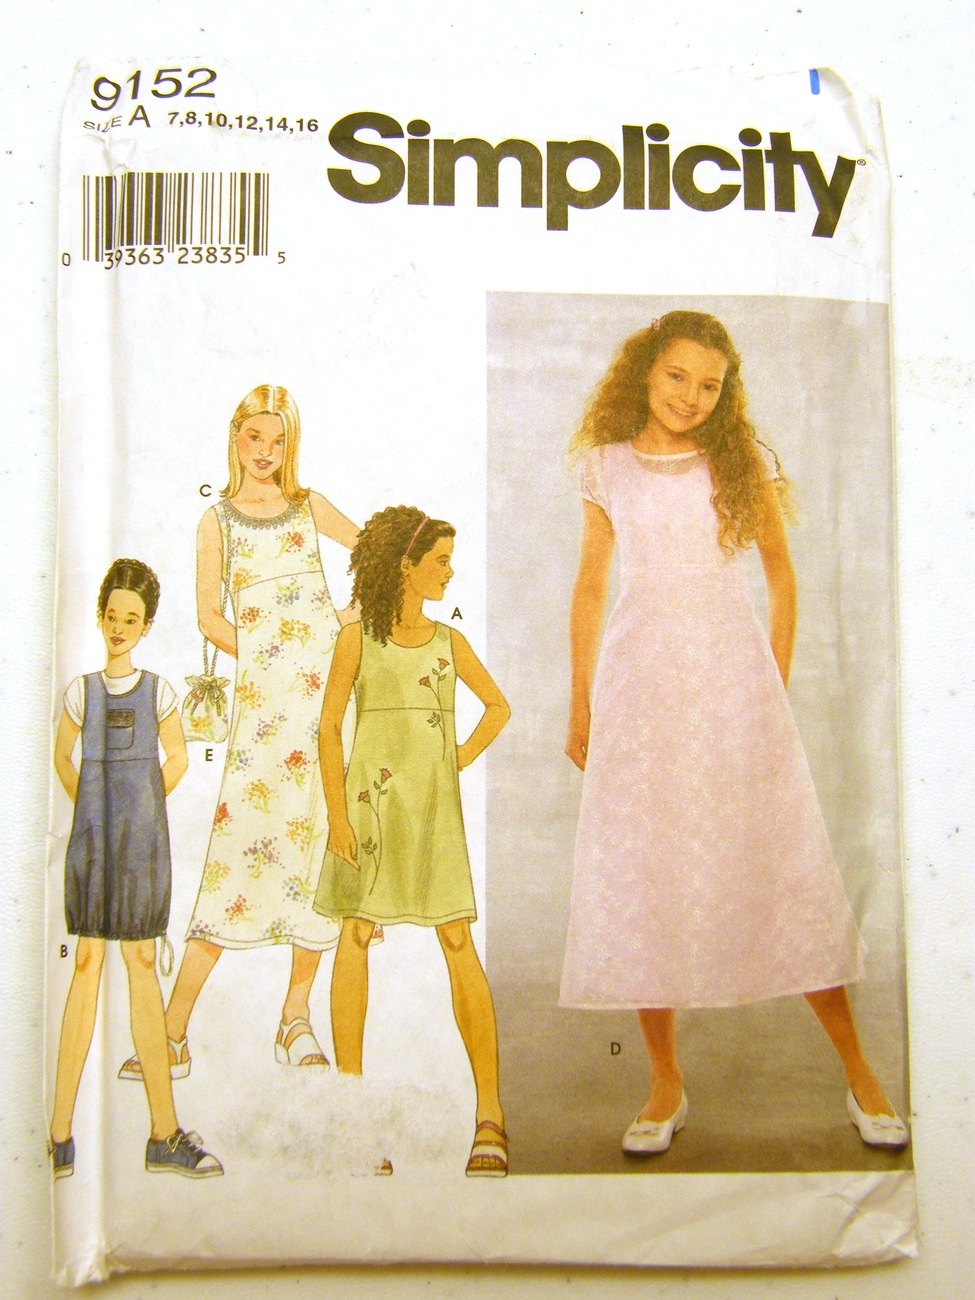 Simplicity Girl Dresses or Jumper and Purse 9152 for Size A, Simplicity New Look